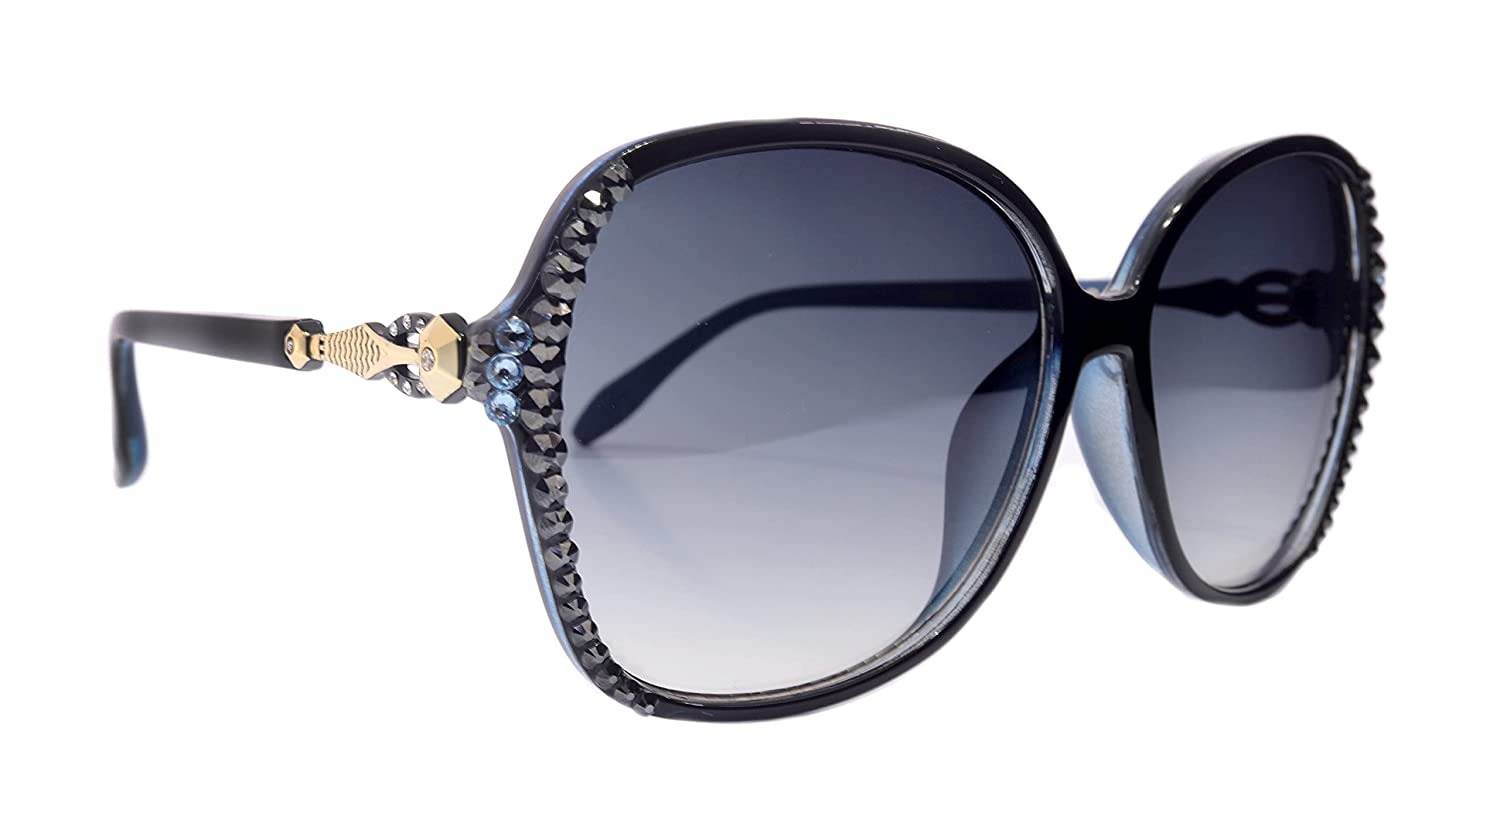 Bling Women Special sale item Sunglasses Adorned with Pr Genuine UV Crystals All items free shipping 100%